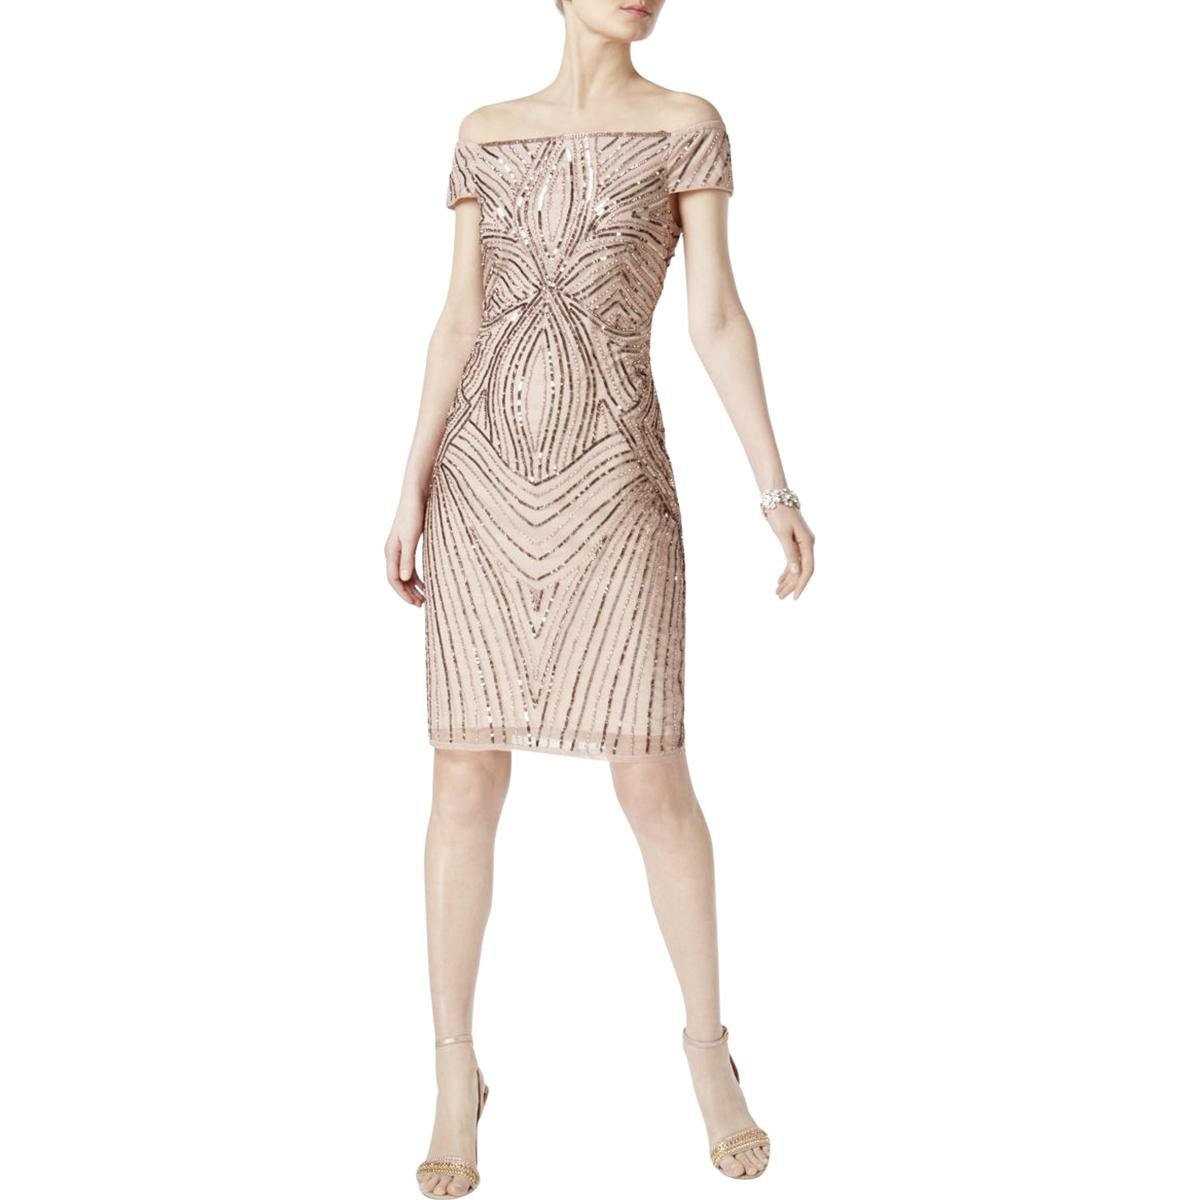 5ee9e1ce Details about Adrianna Papell Womens Pink Sequined Sheath Cocktail Dress  Petites 2P BHFO 3395